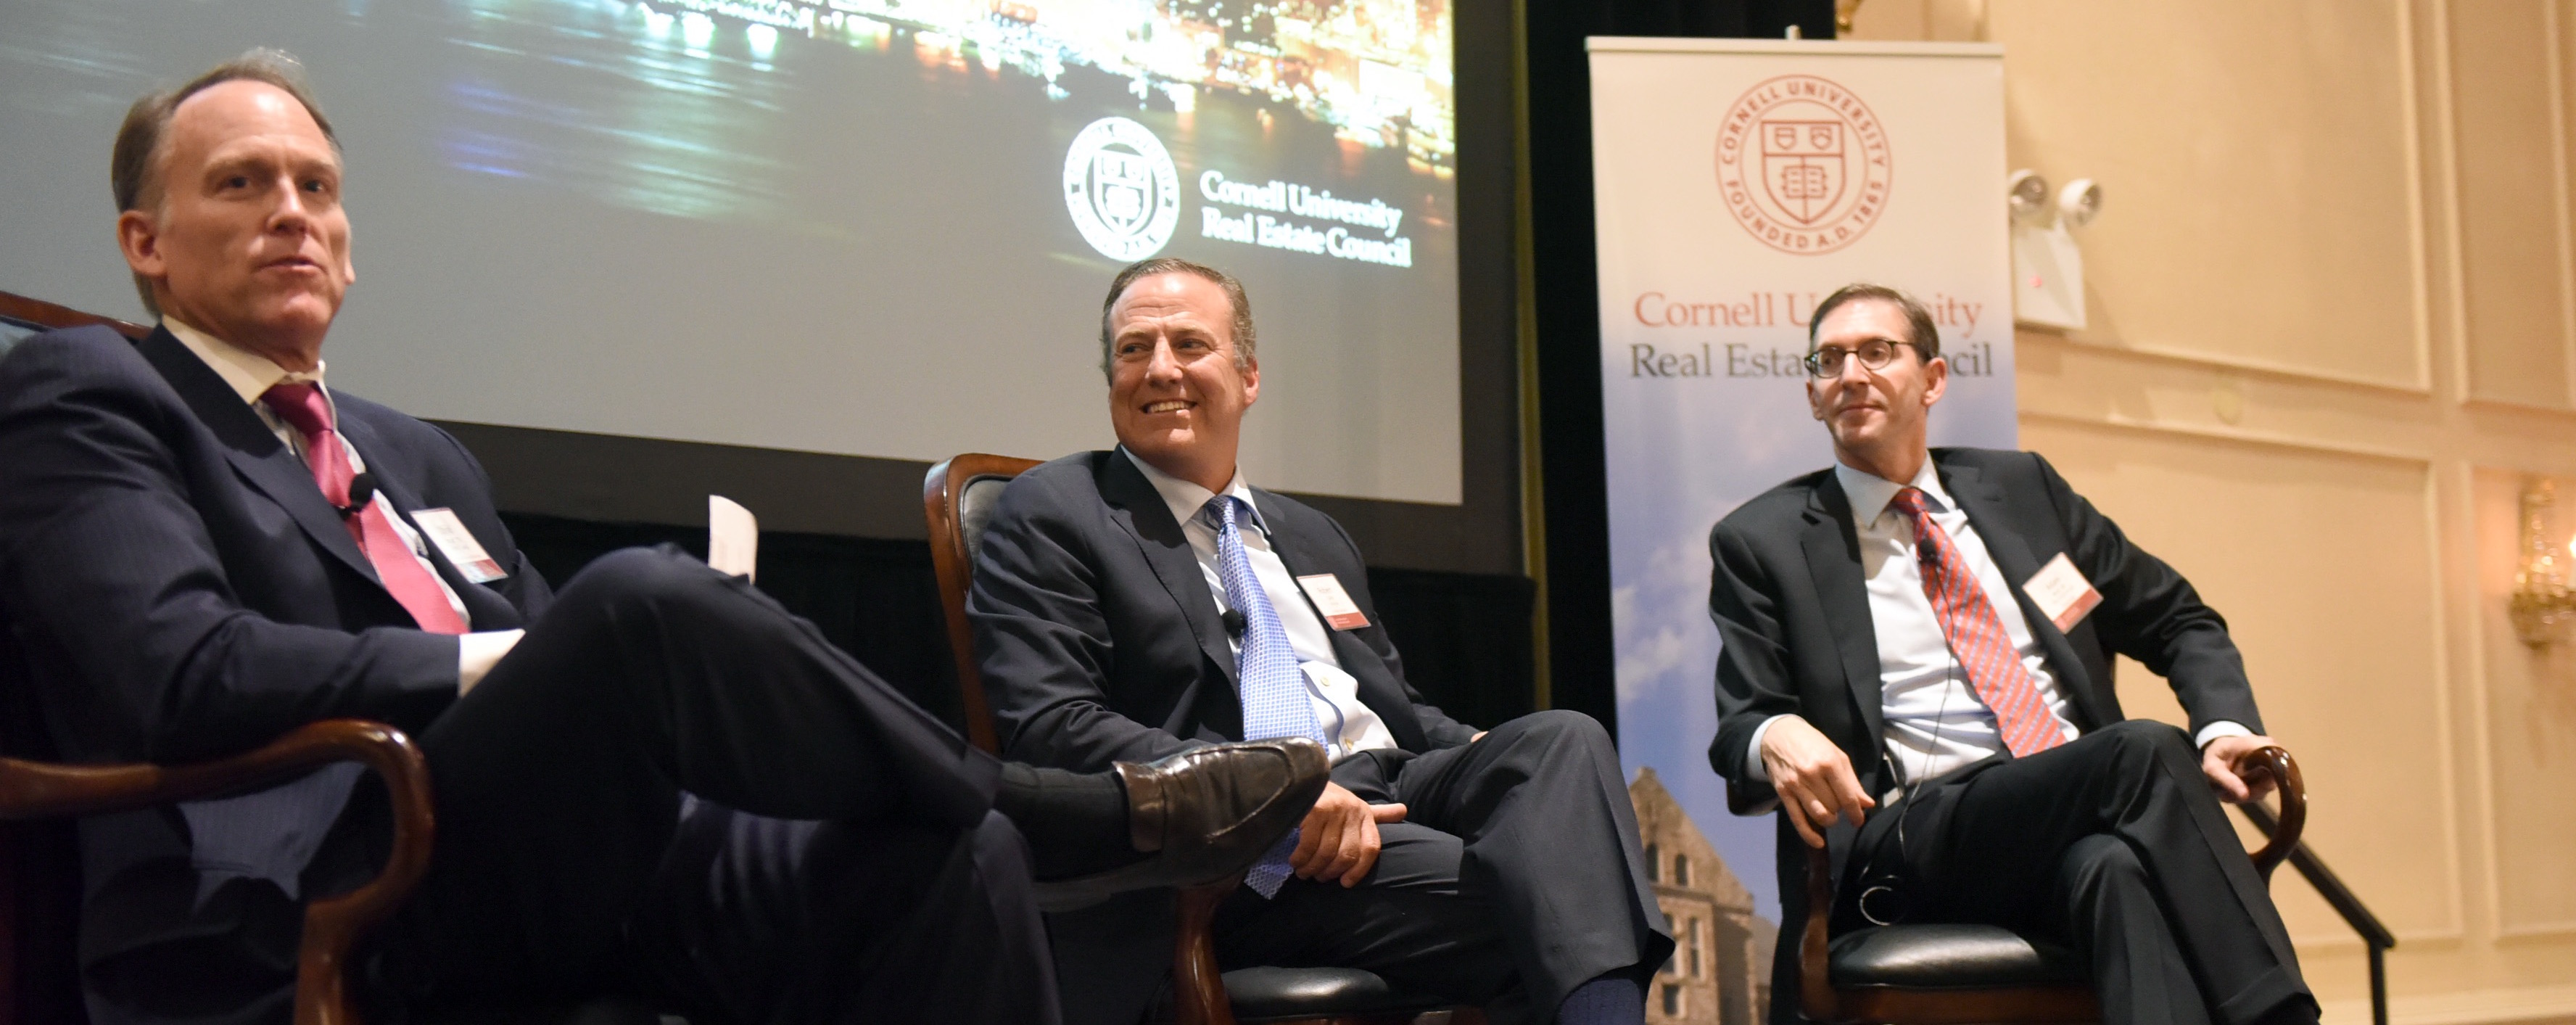 Save the Date: Announcing the 34th Annual Cornell Real Estate Conference, October 13-14